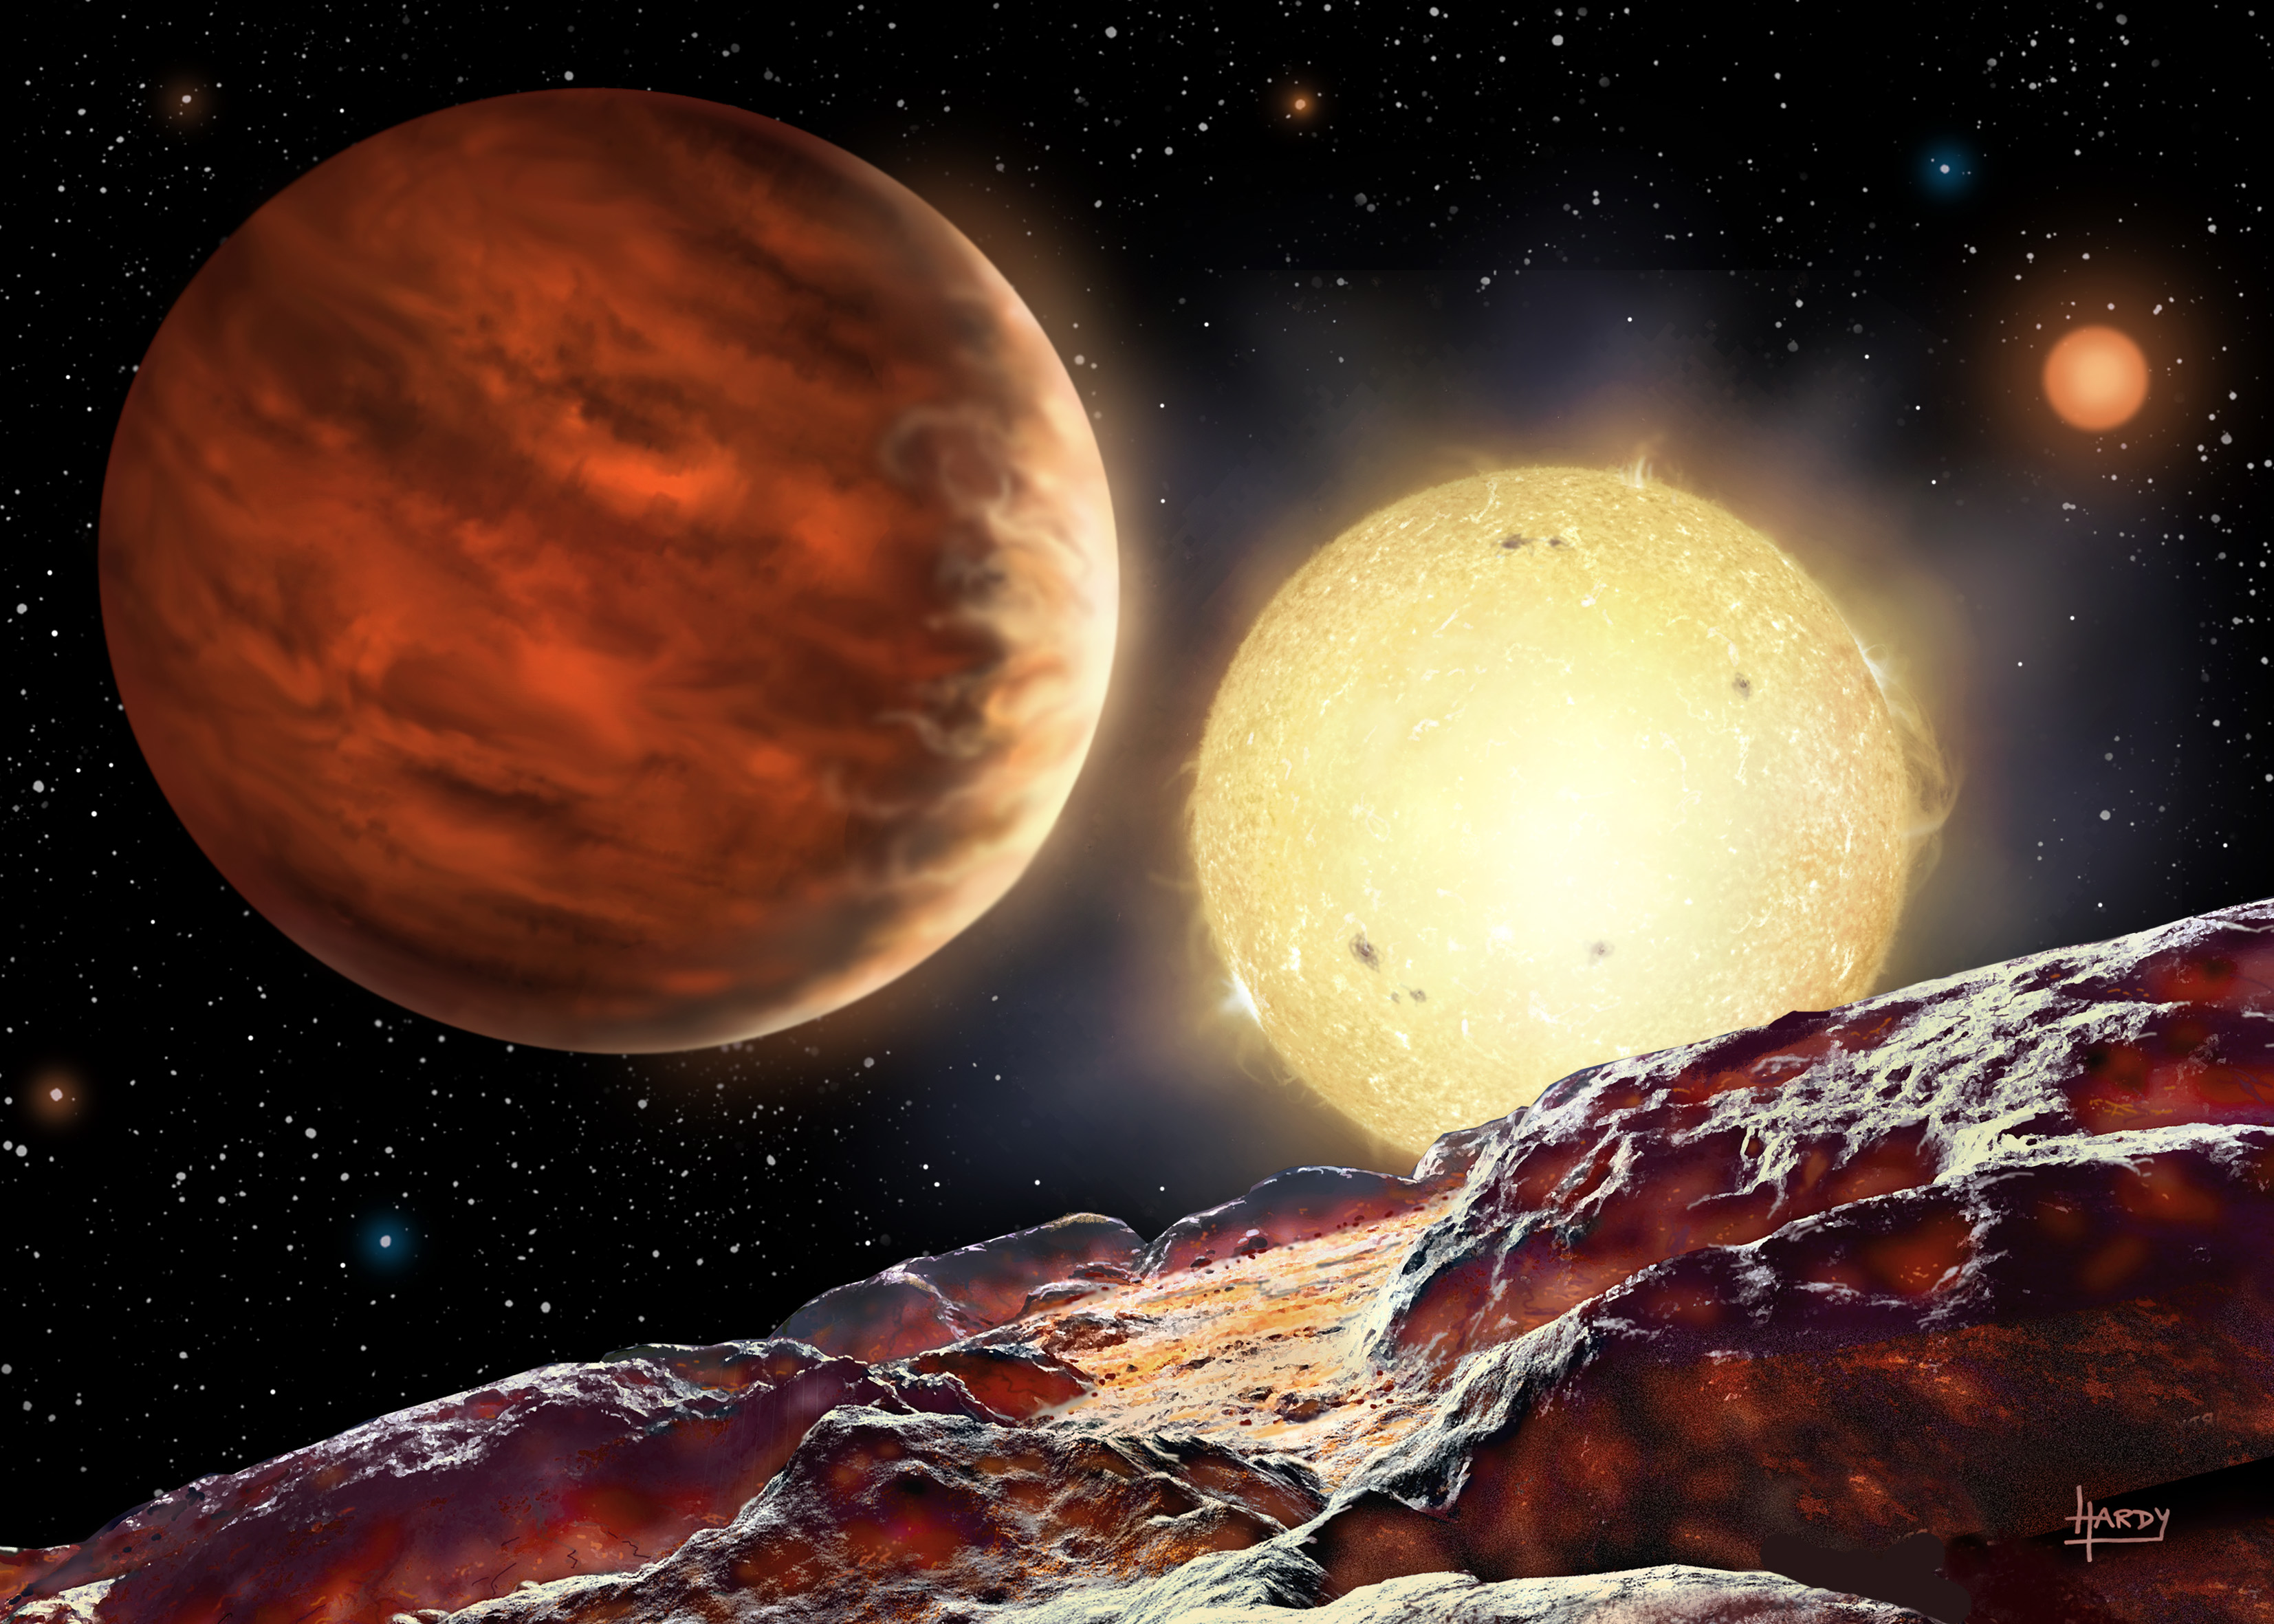 15-yr-old work-experience schoolboy discovers a new planet ...